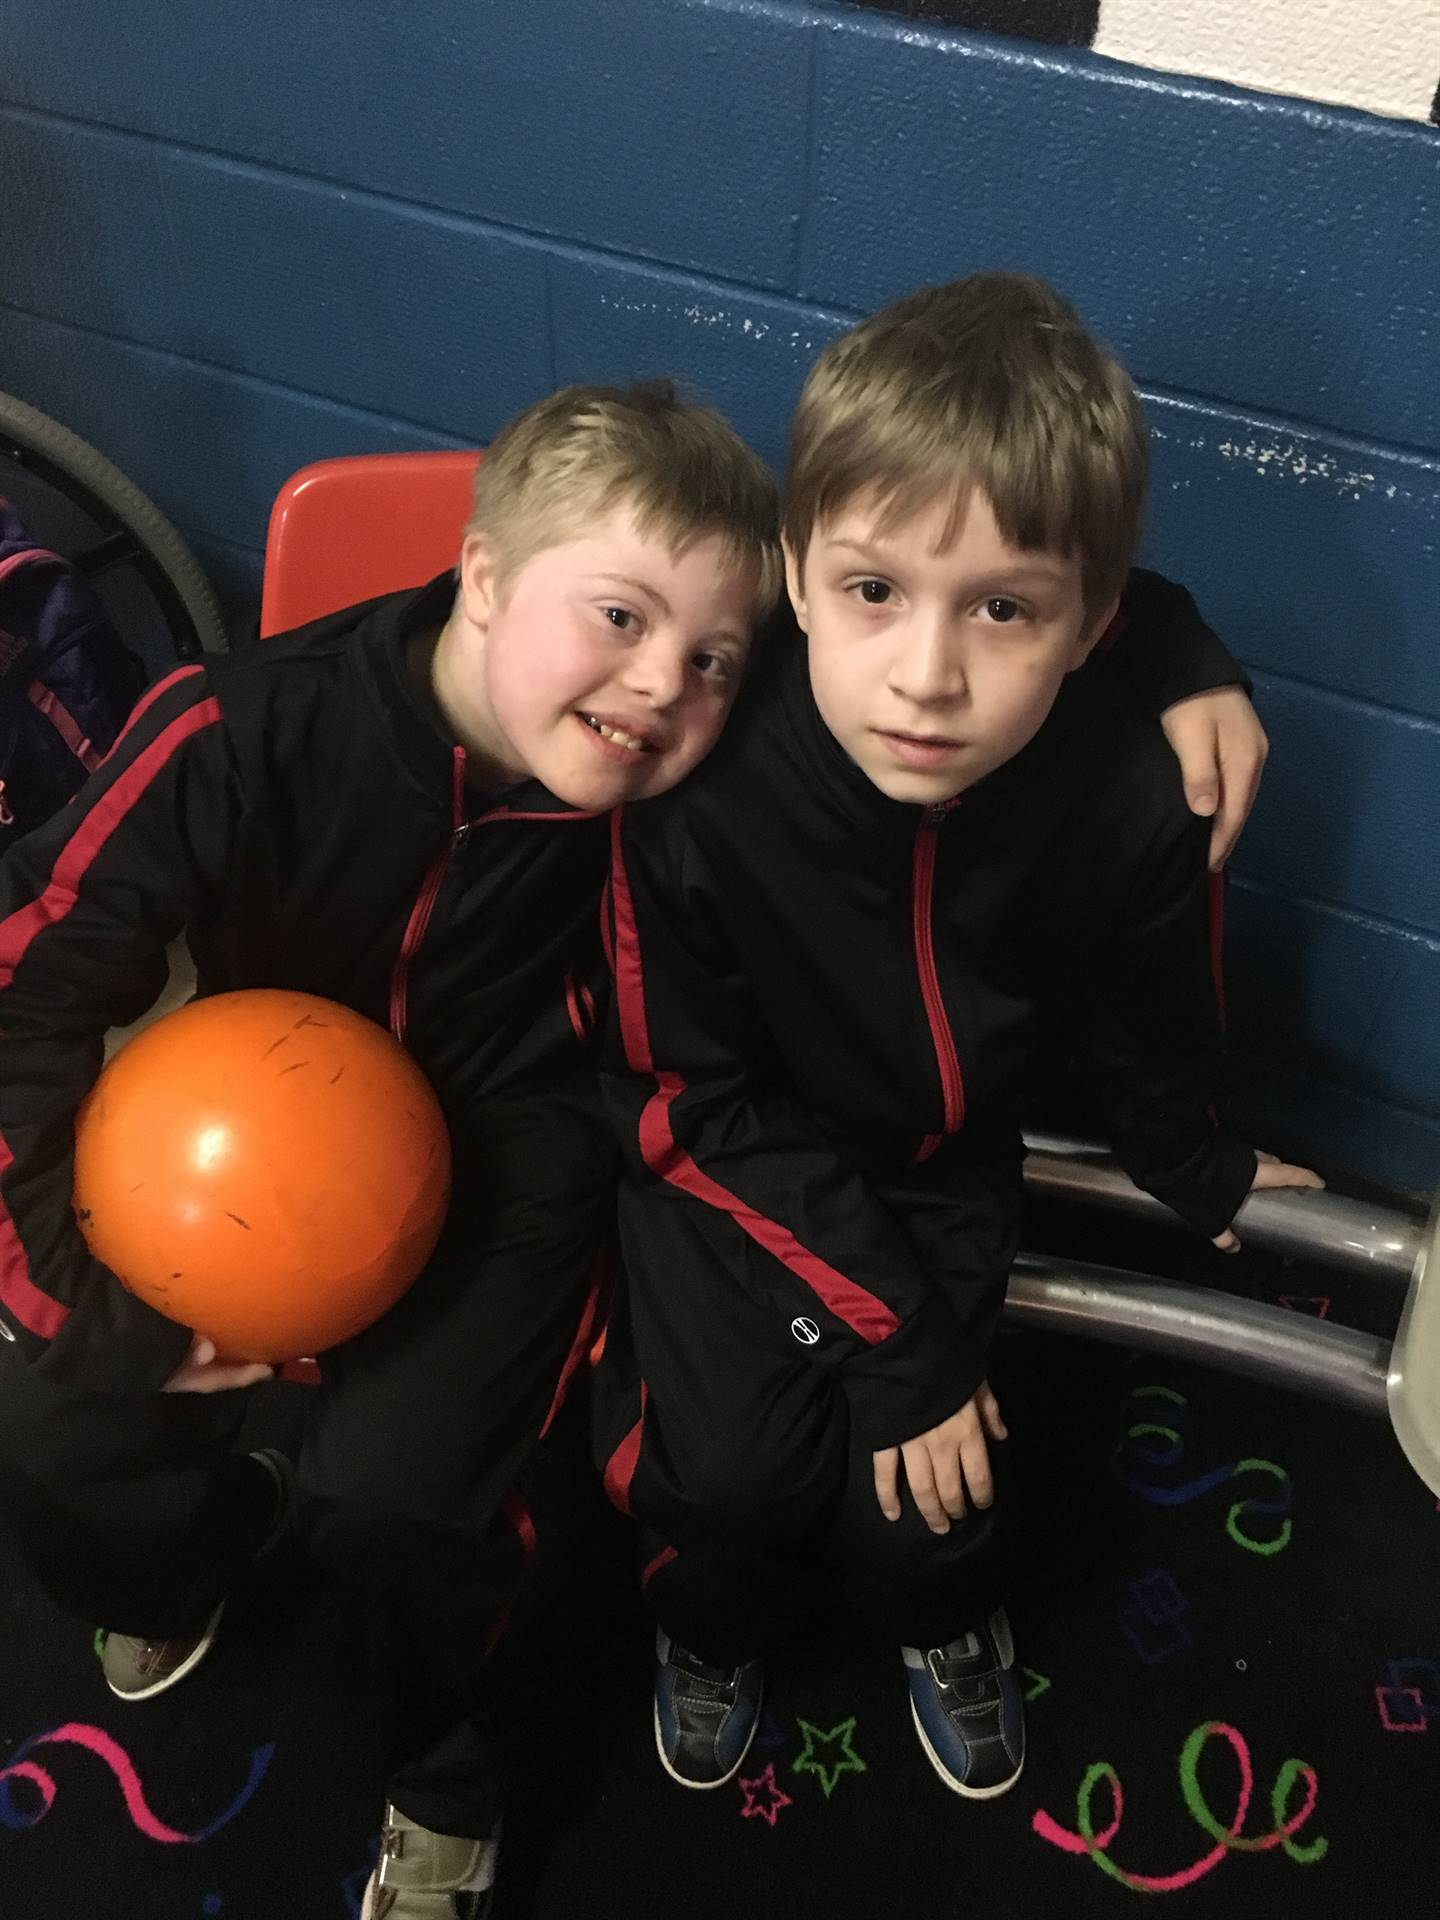 Two students arm in arm with a bowling ball